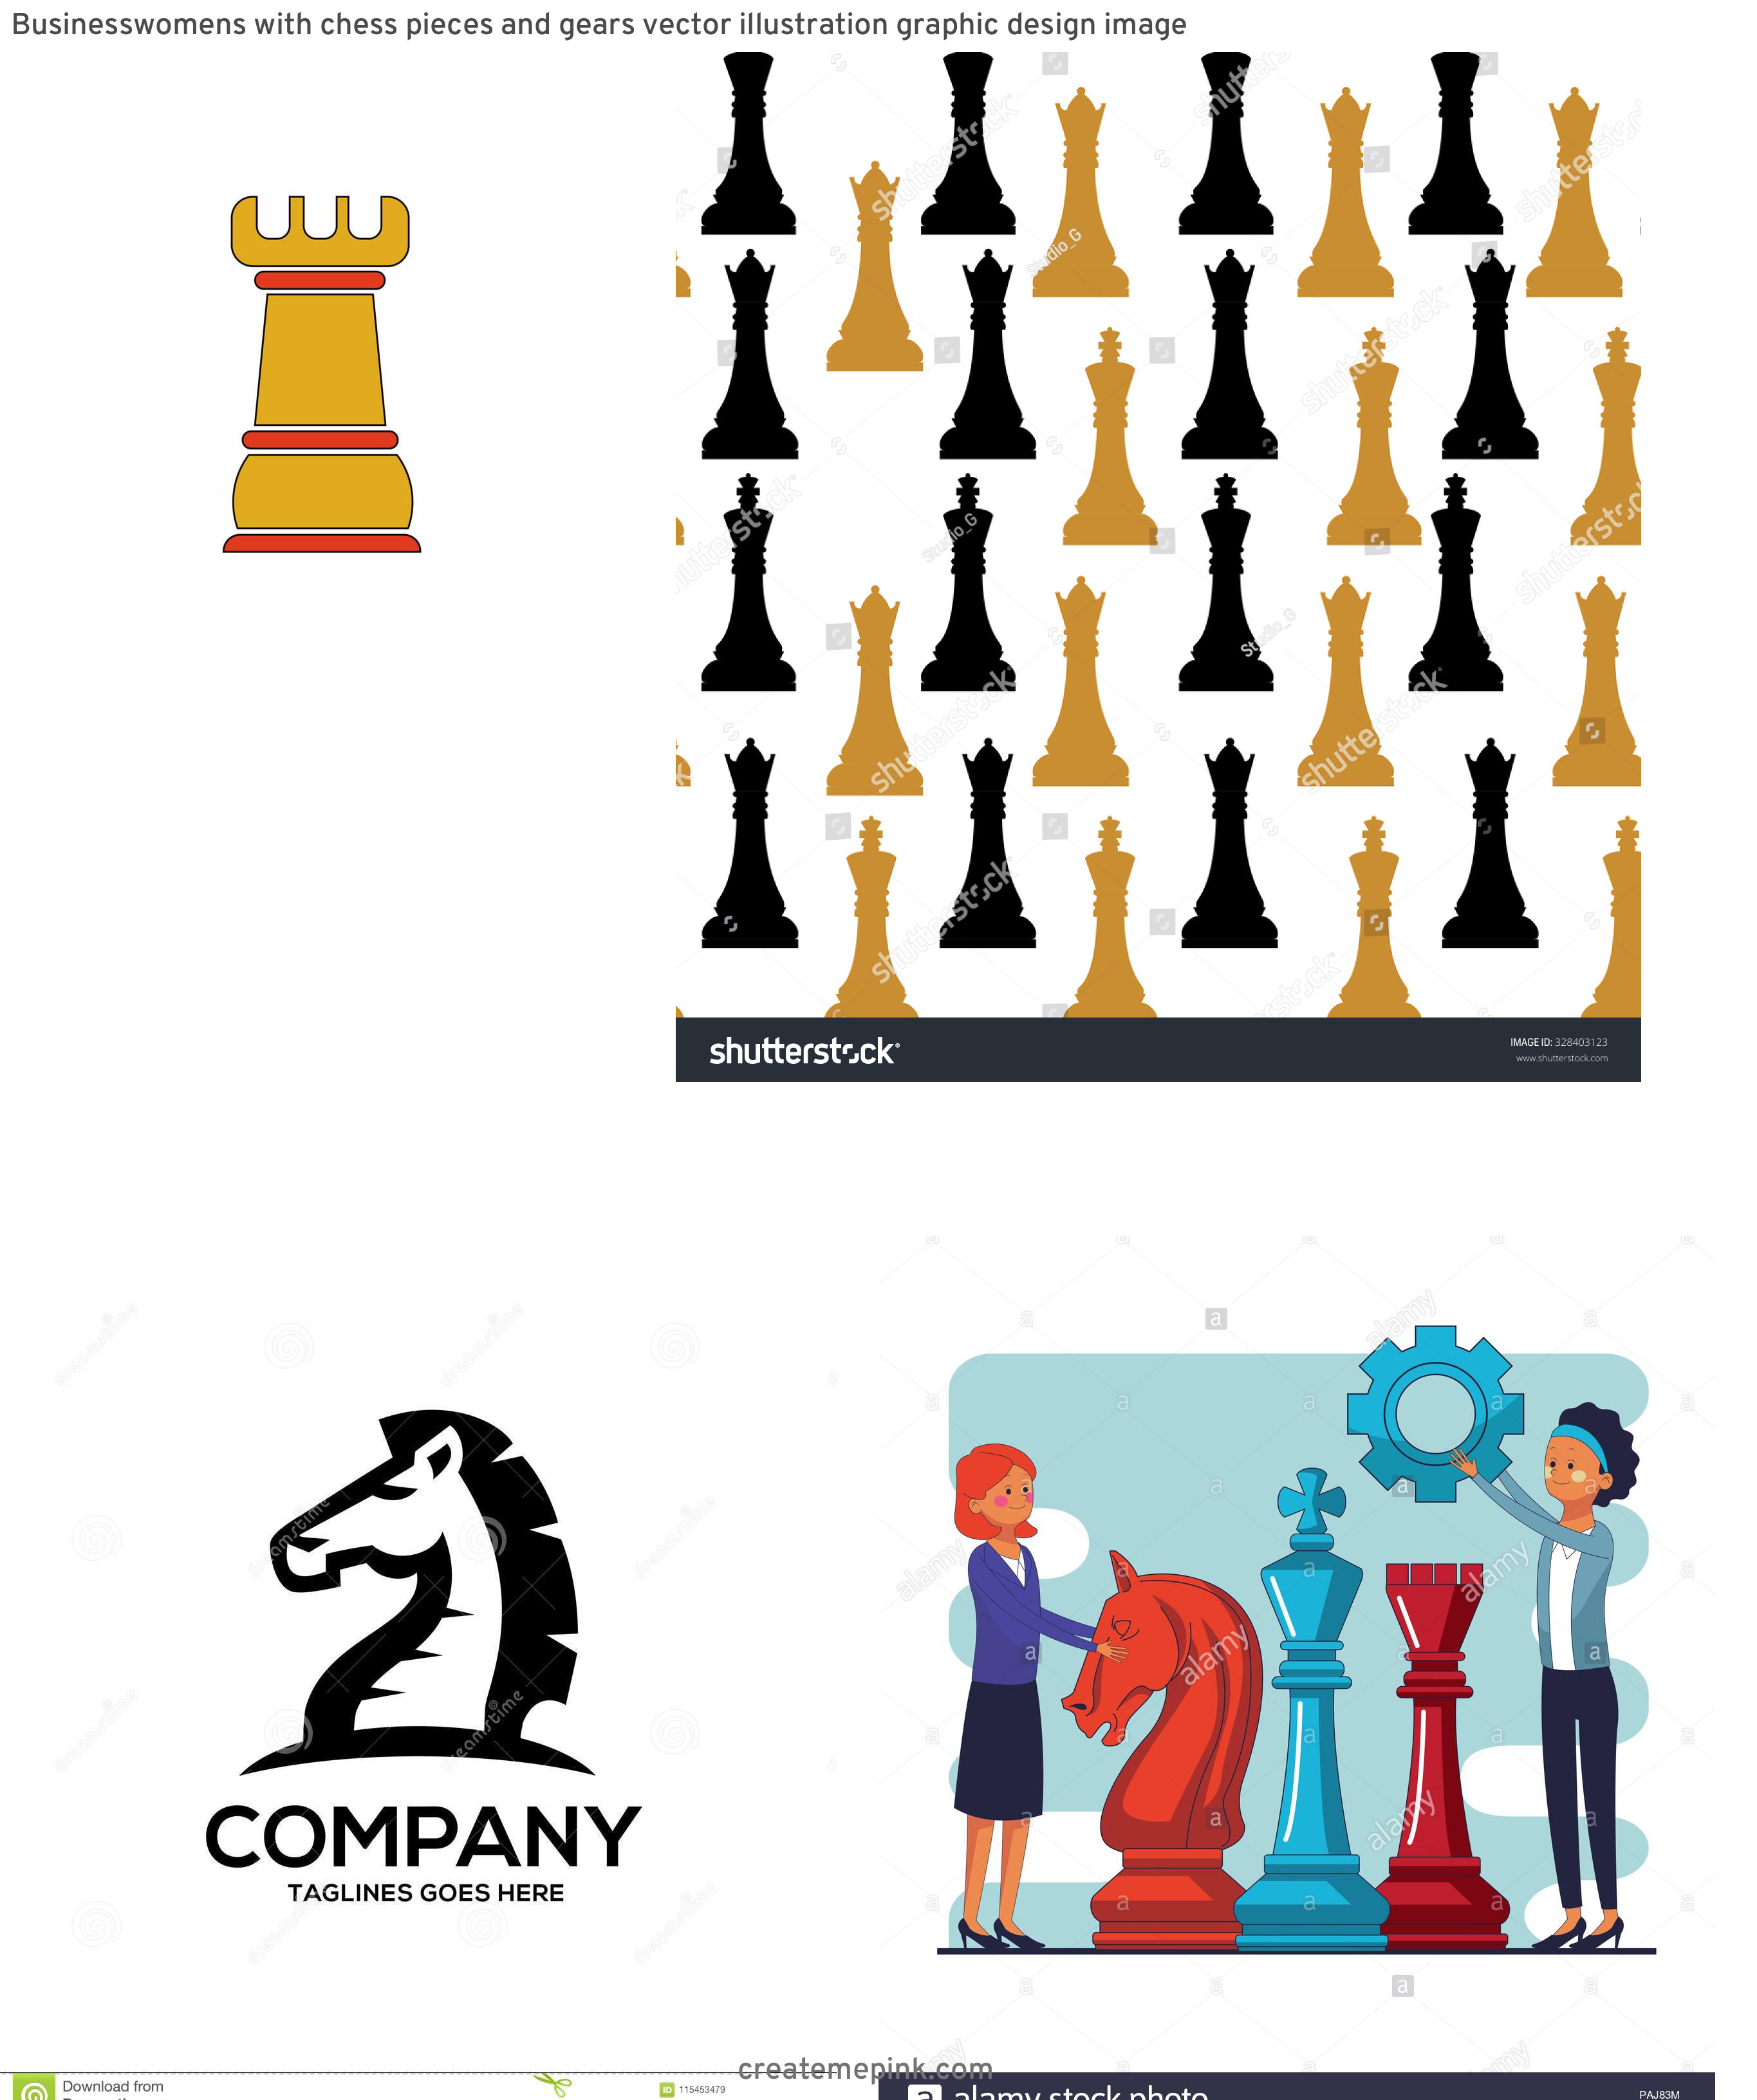 Chess Vector Graphic: Businesswomens With Chess Pieces And Gears Vector Illustration Graphic Design Image